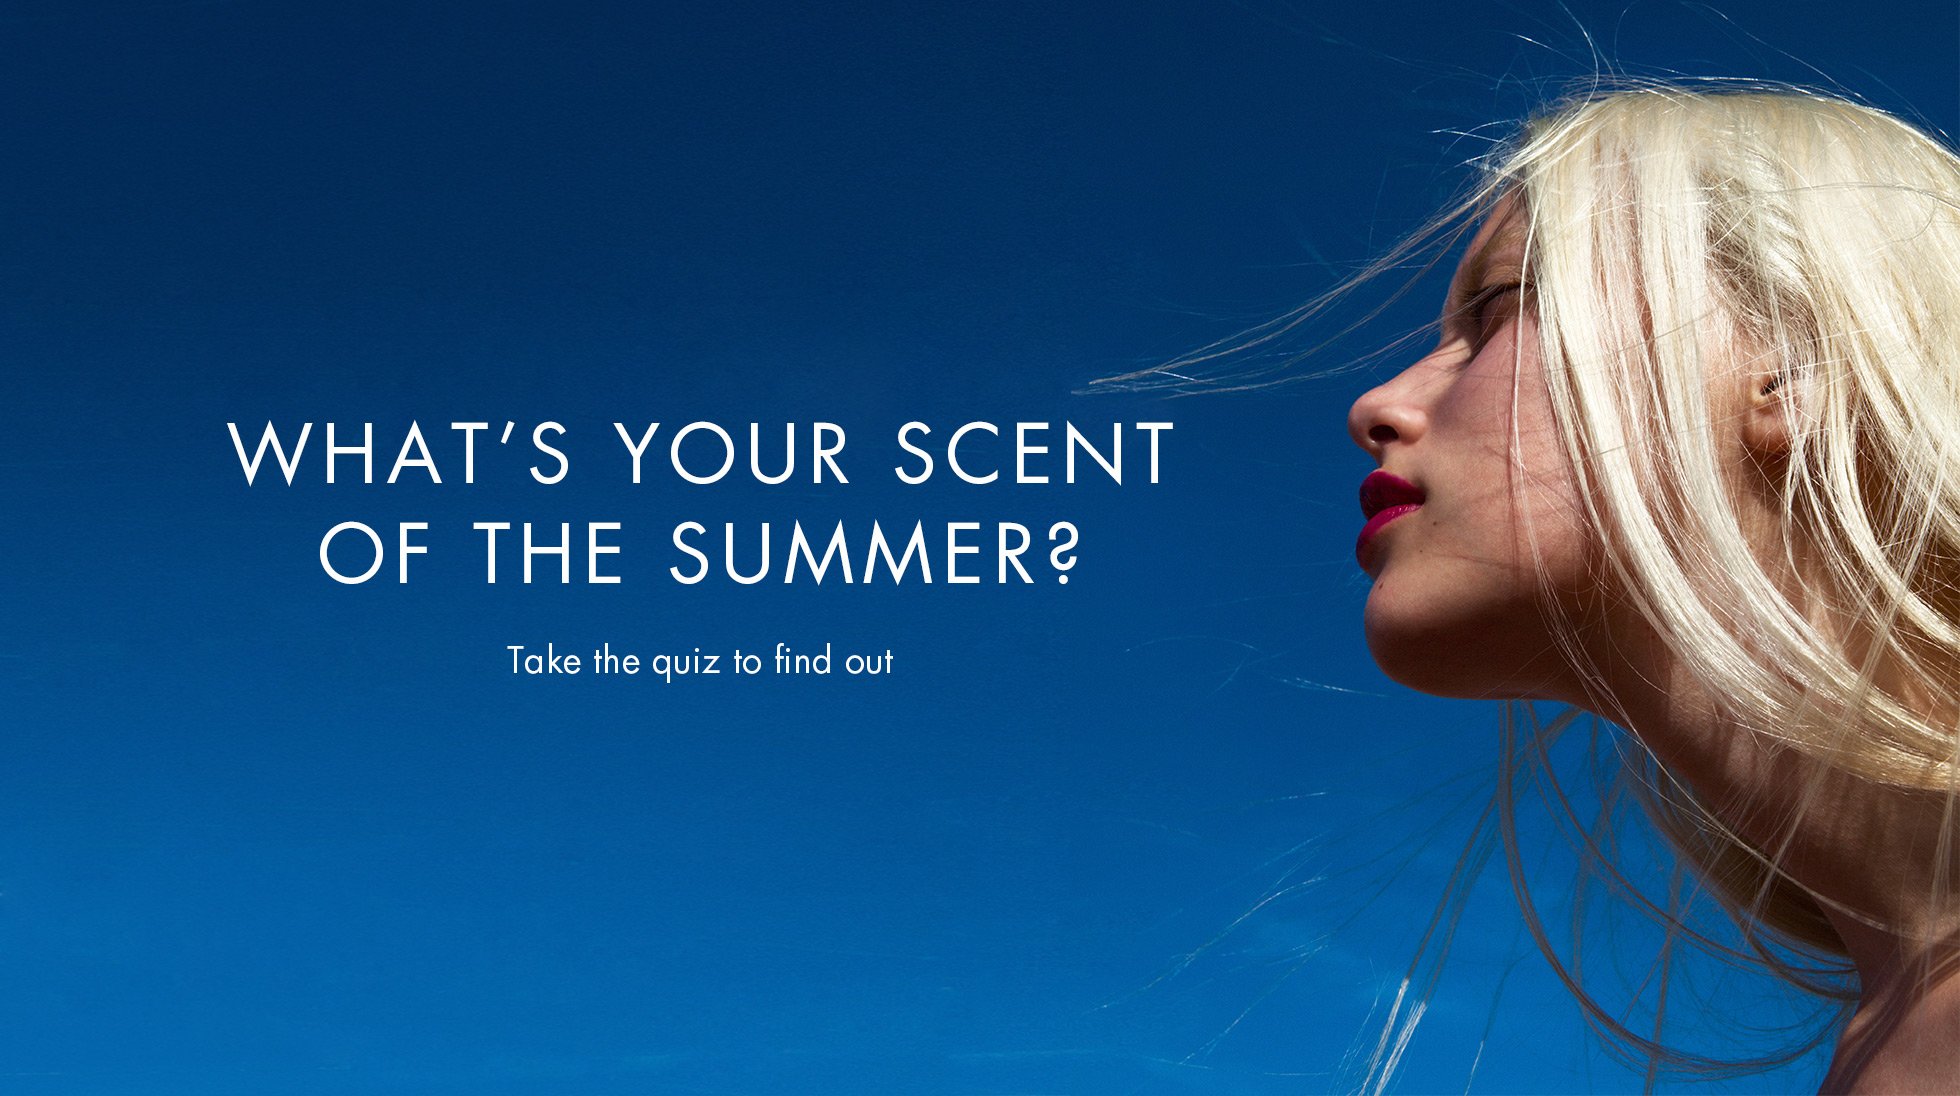 WHAT'S YOUR SCENT OF THE SUMMER